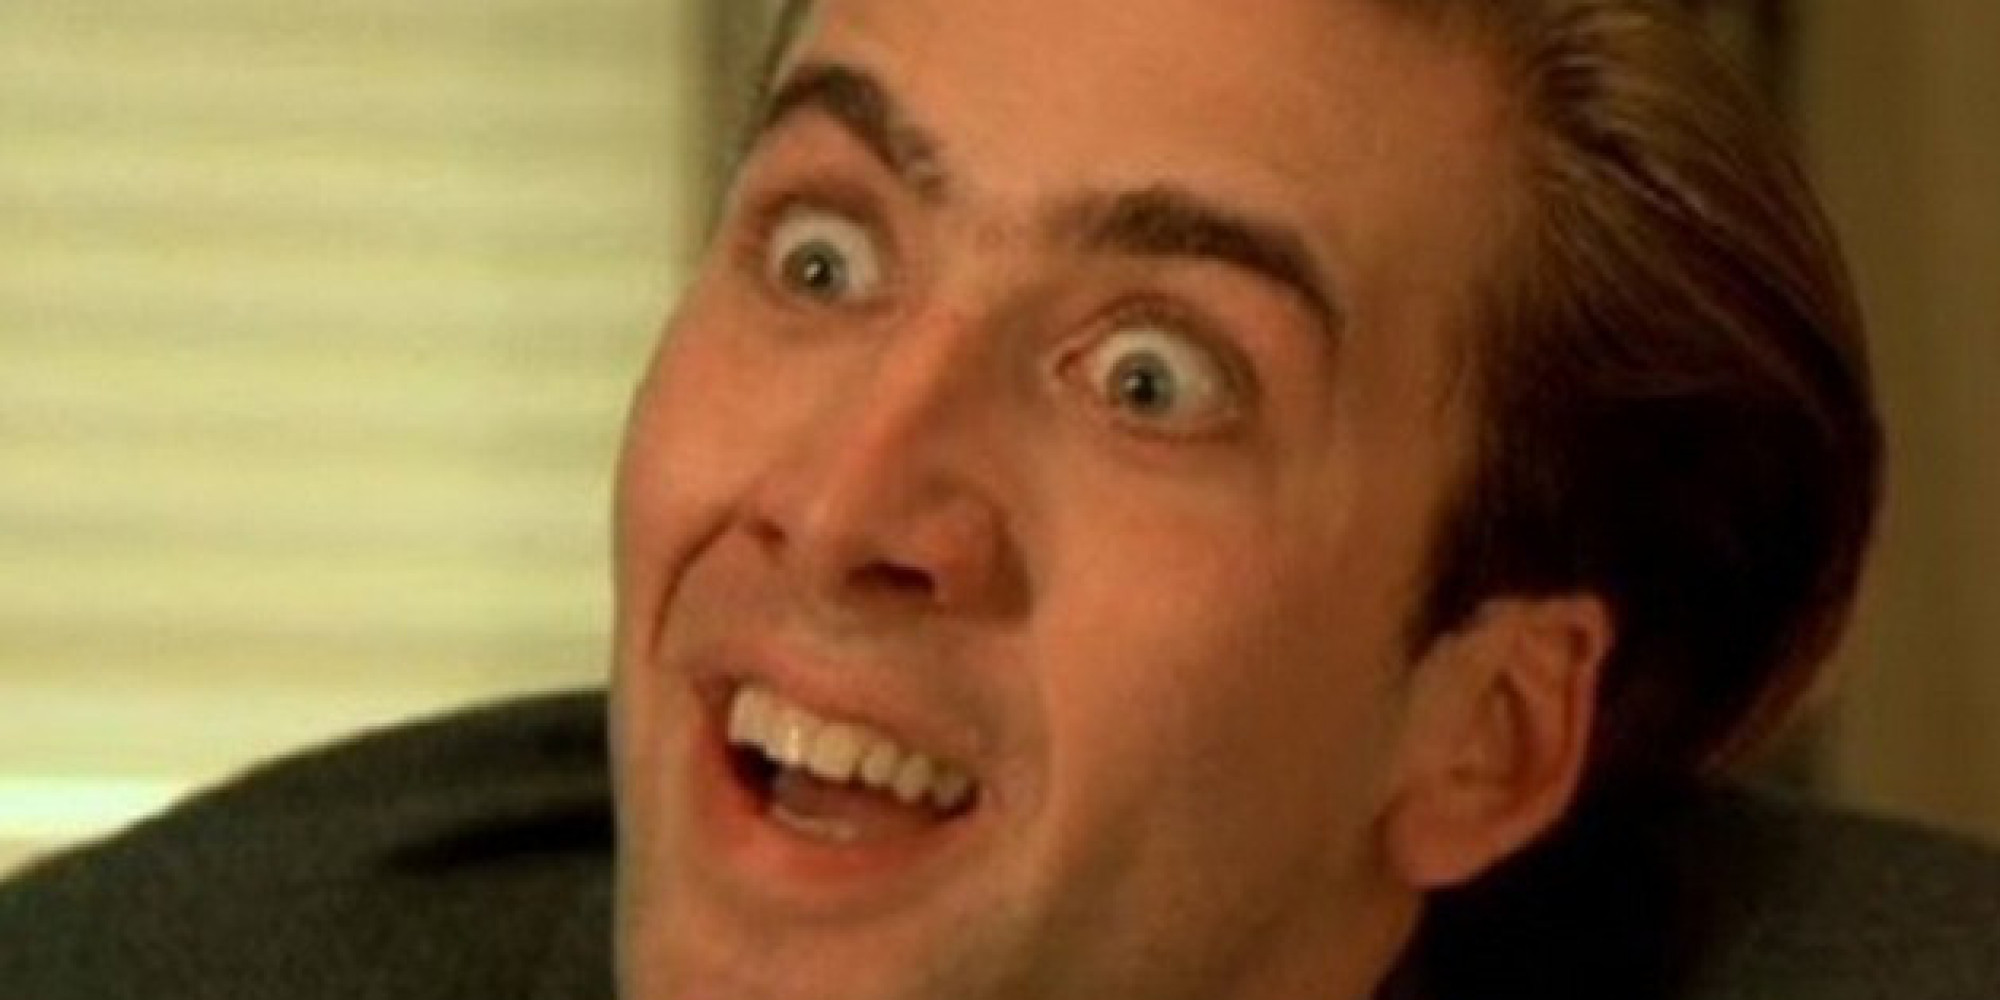 Battlefield 5 Devs Are Sure Fans Wont Expect Impending Big Reveal o NIC CAGE facebook